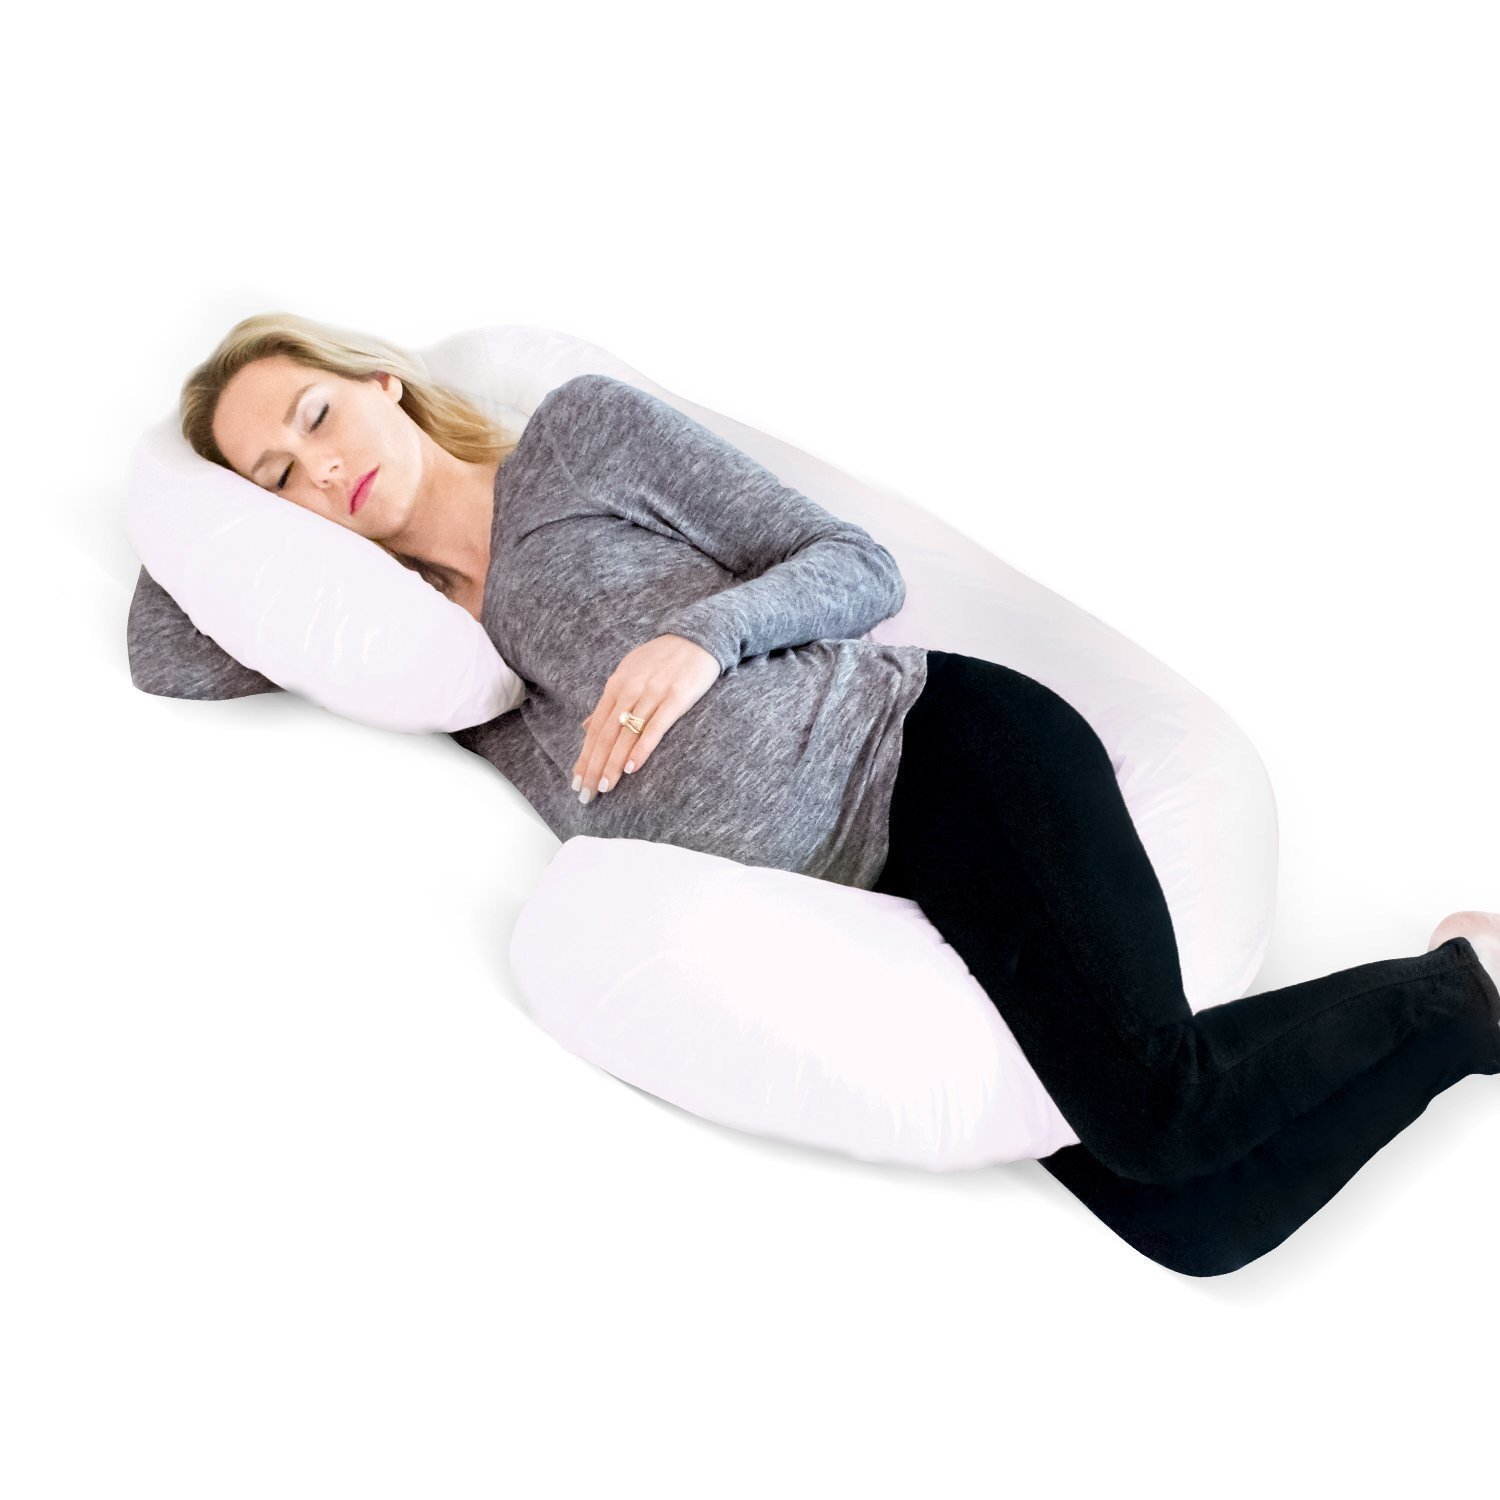 best naomihomecozy body com pregnancy naomi pillows cozy unbiased pillow home reviews smartmompicks